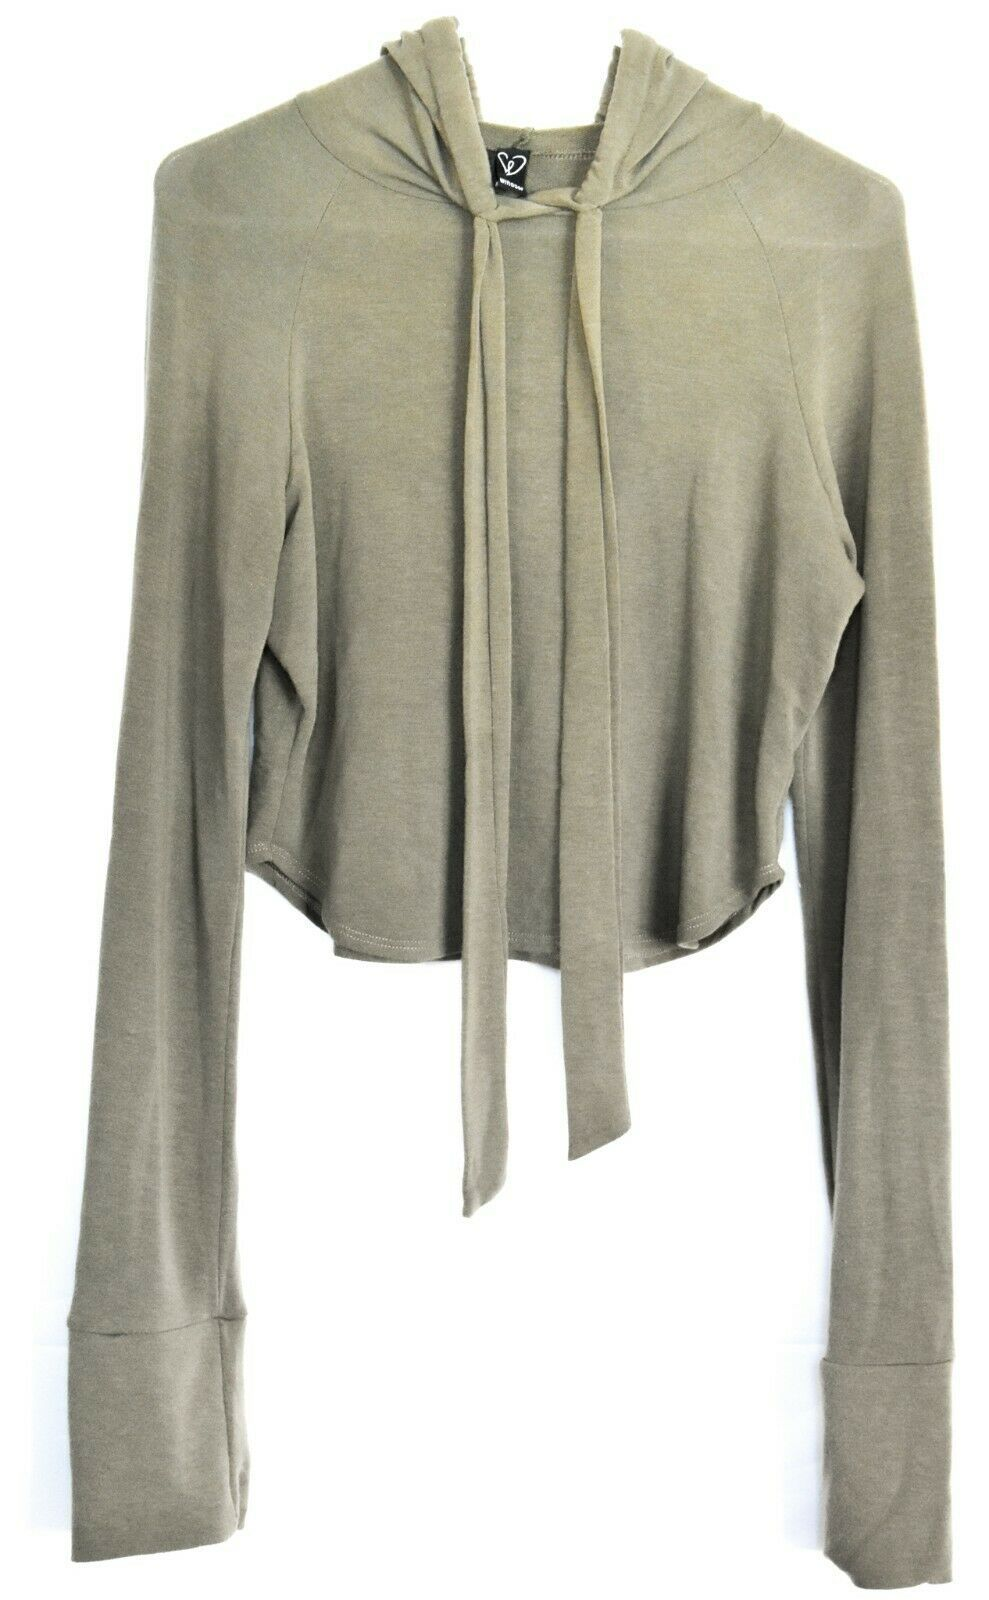 Windsor Olive Green Cropped Drawstring Pullover Hooded Top Hoodie Size S